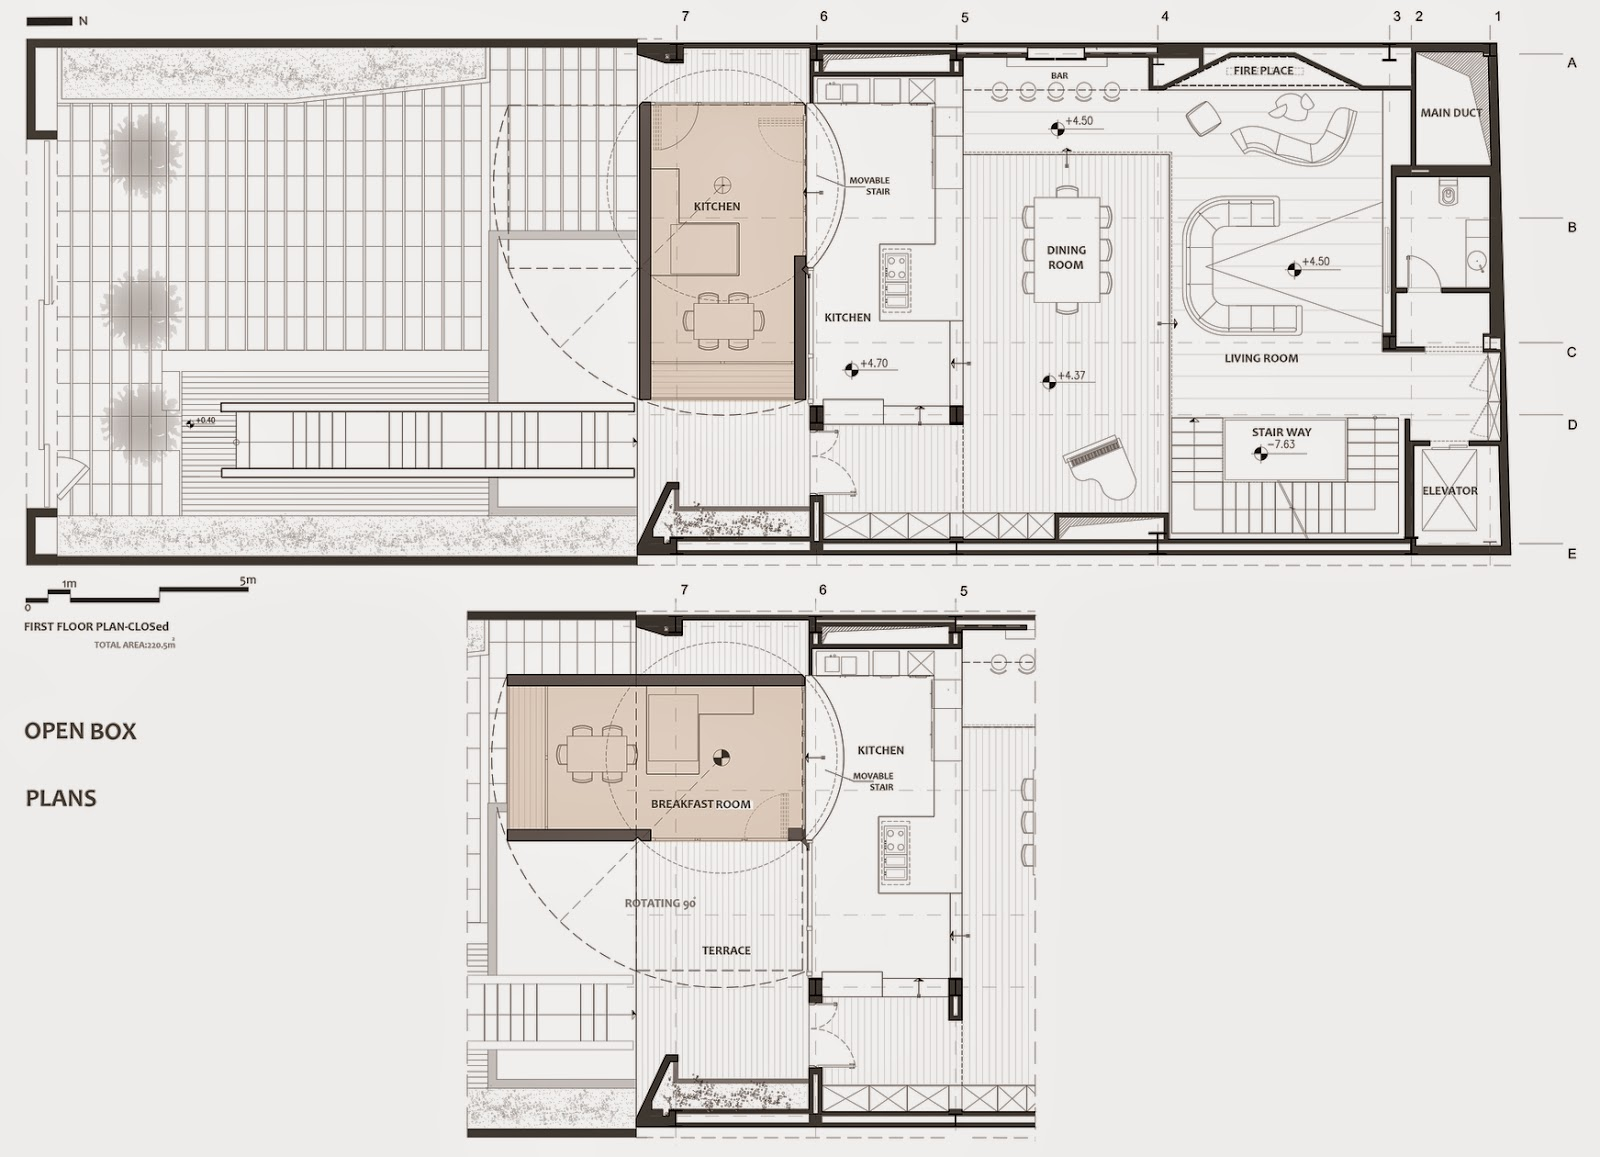 09-Plans-First-Floor-Plan-Section-Nextoffice-Sharifi-Ha-House-Revolving-Rooms-Architecture-www-designstack-co